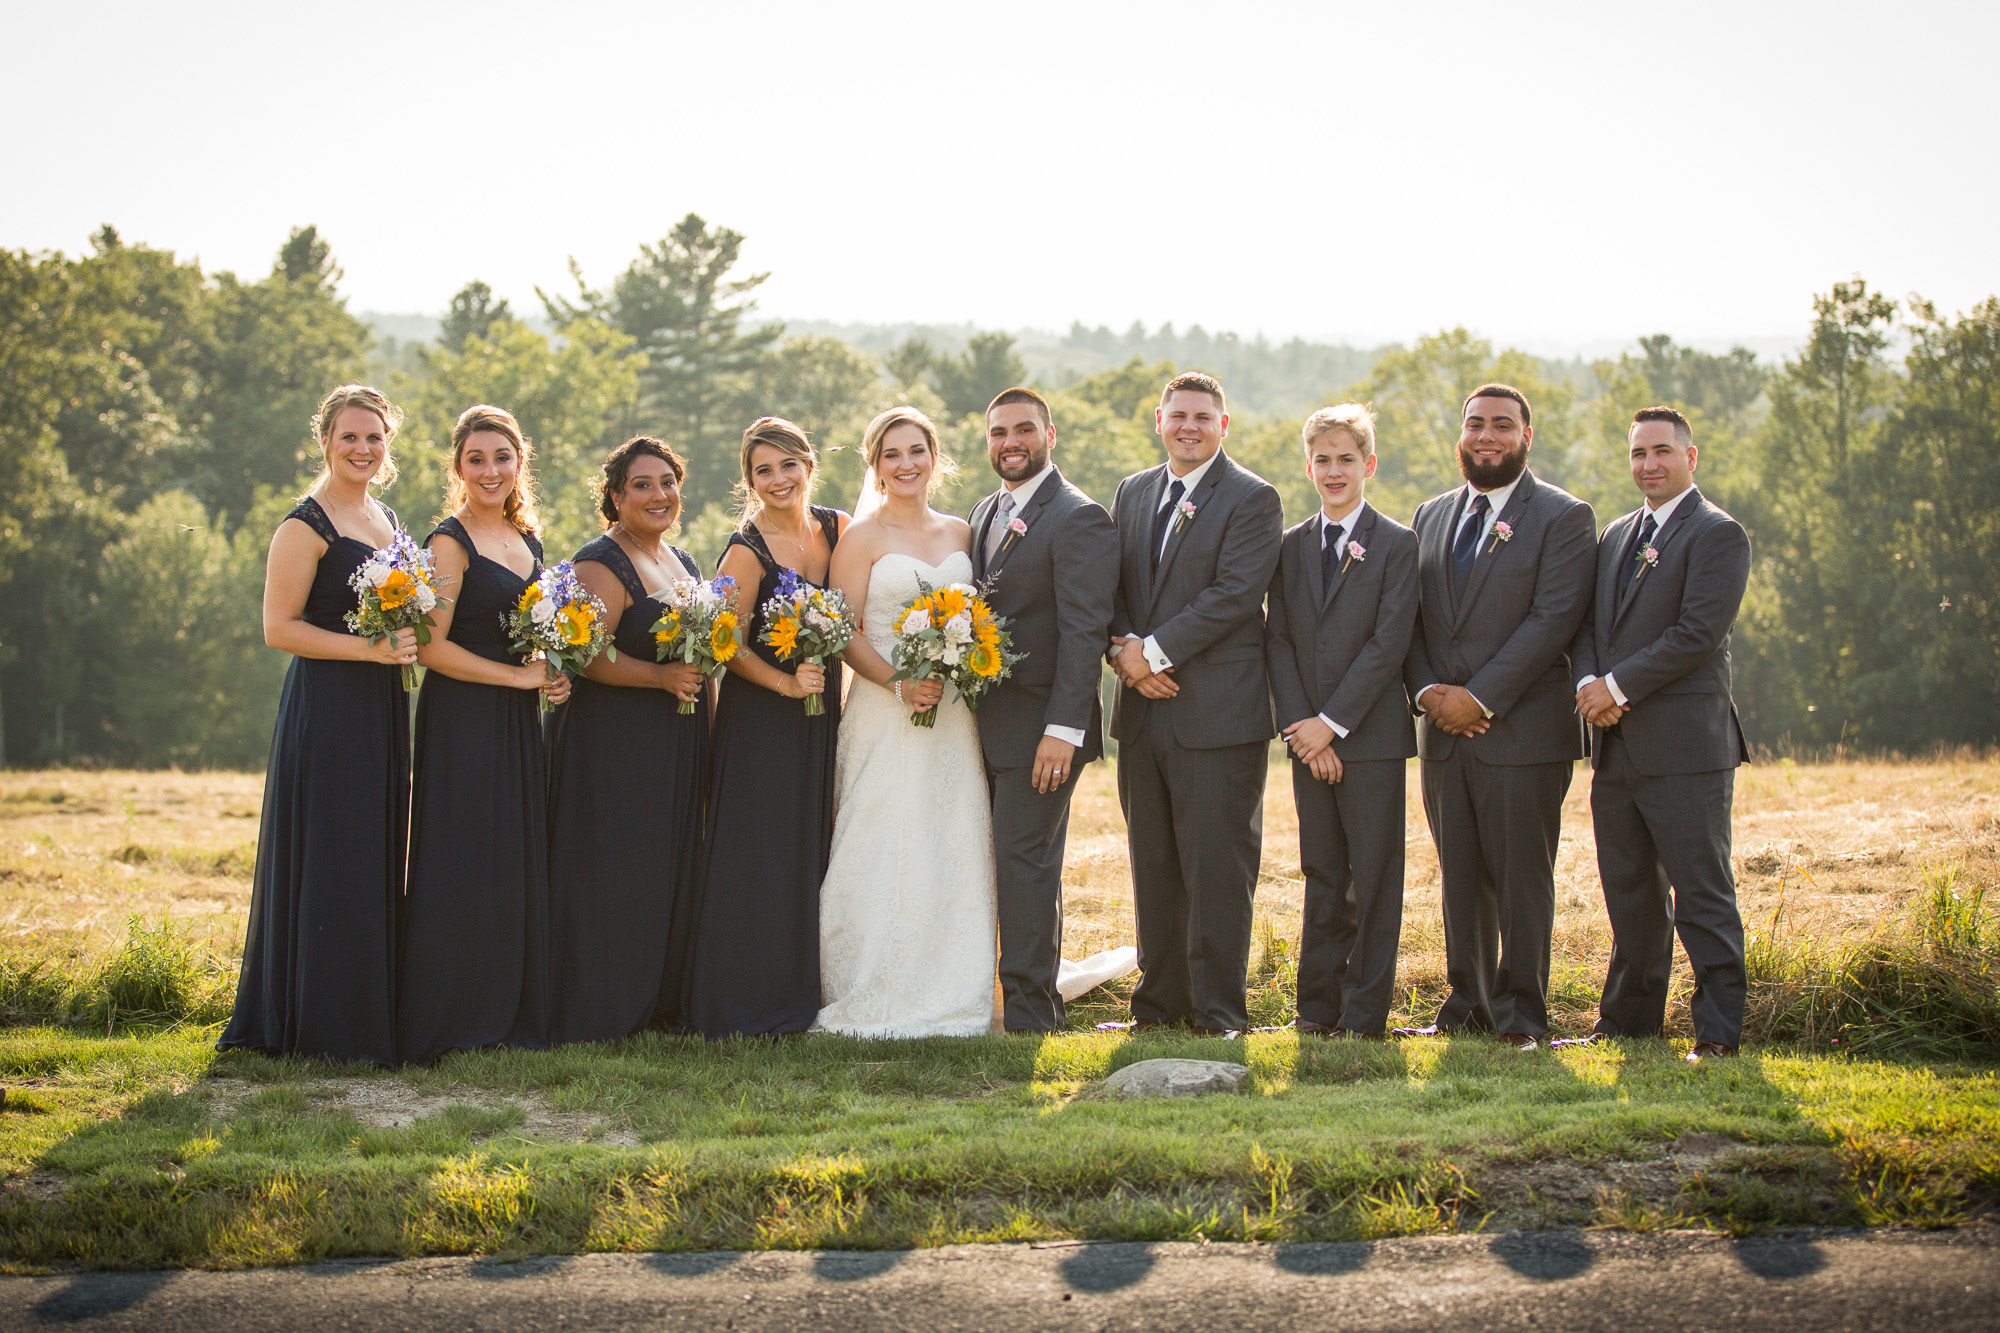 wedding party photo at Harrington Farm hay field